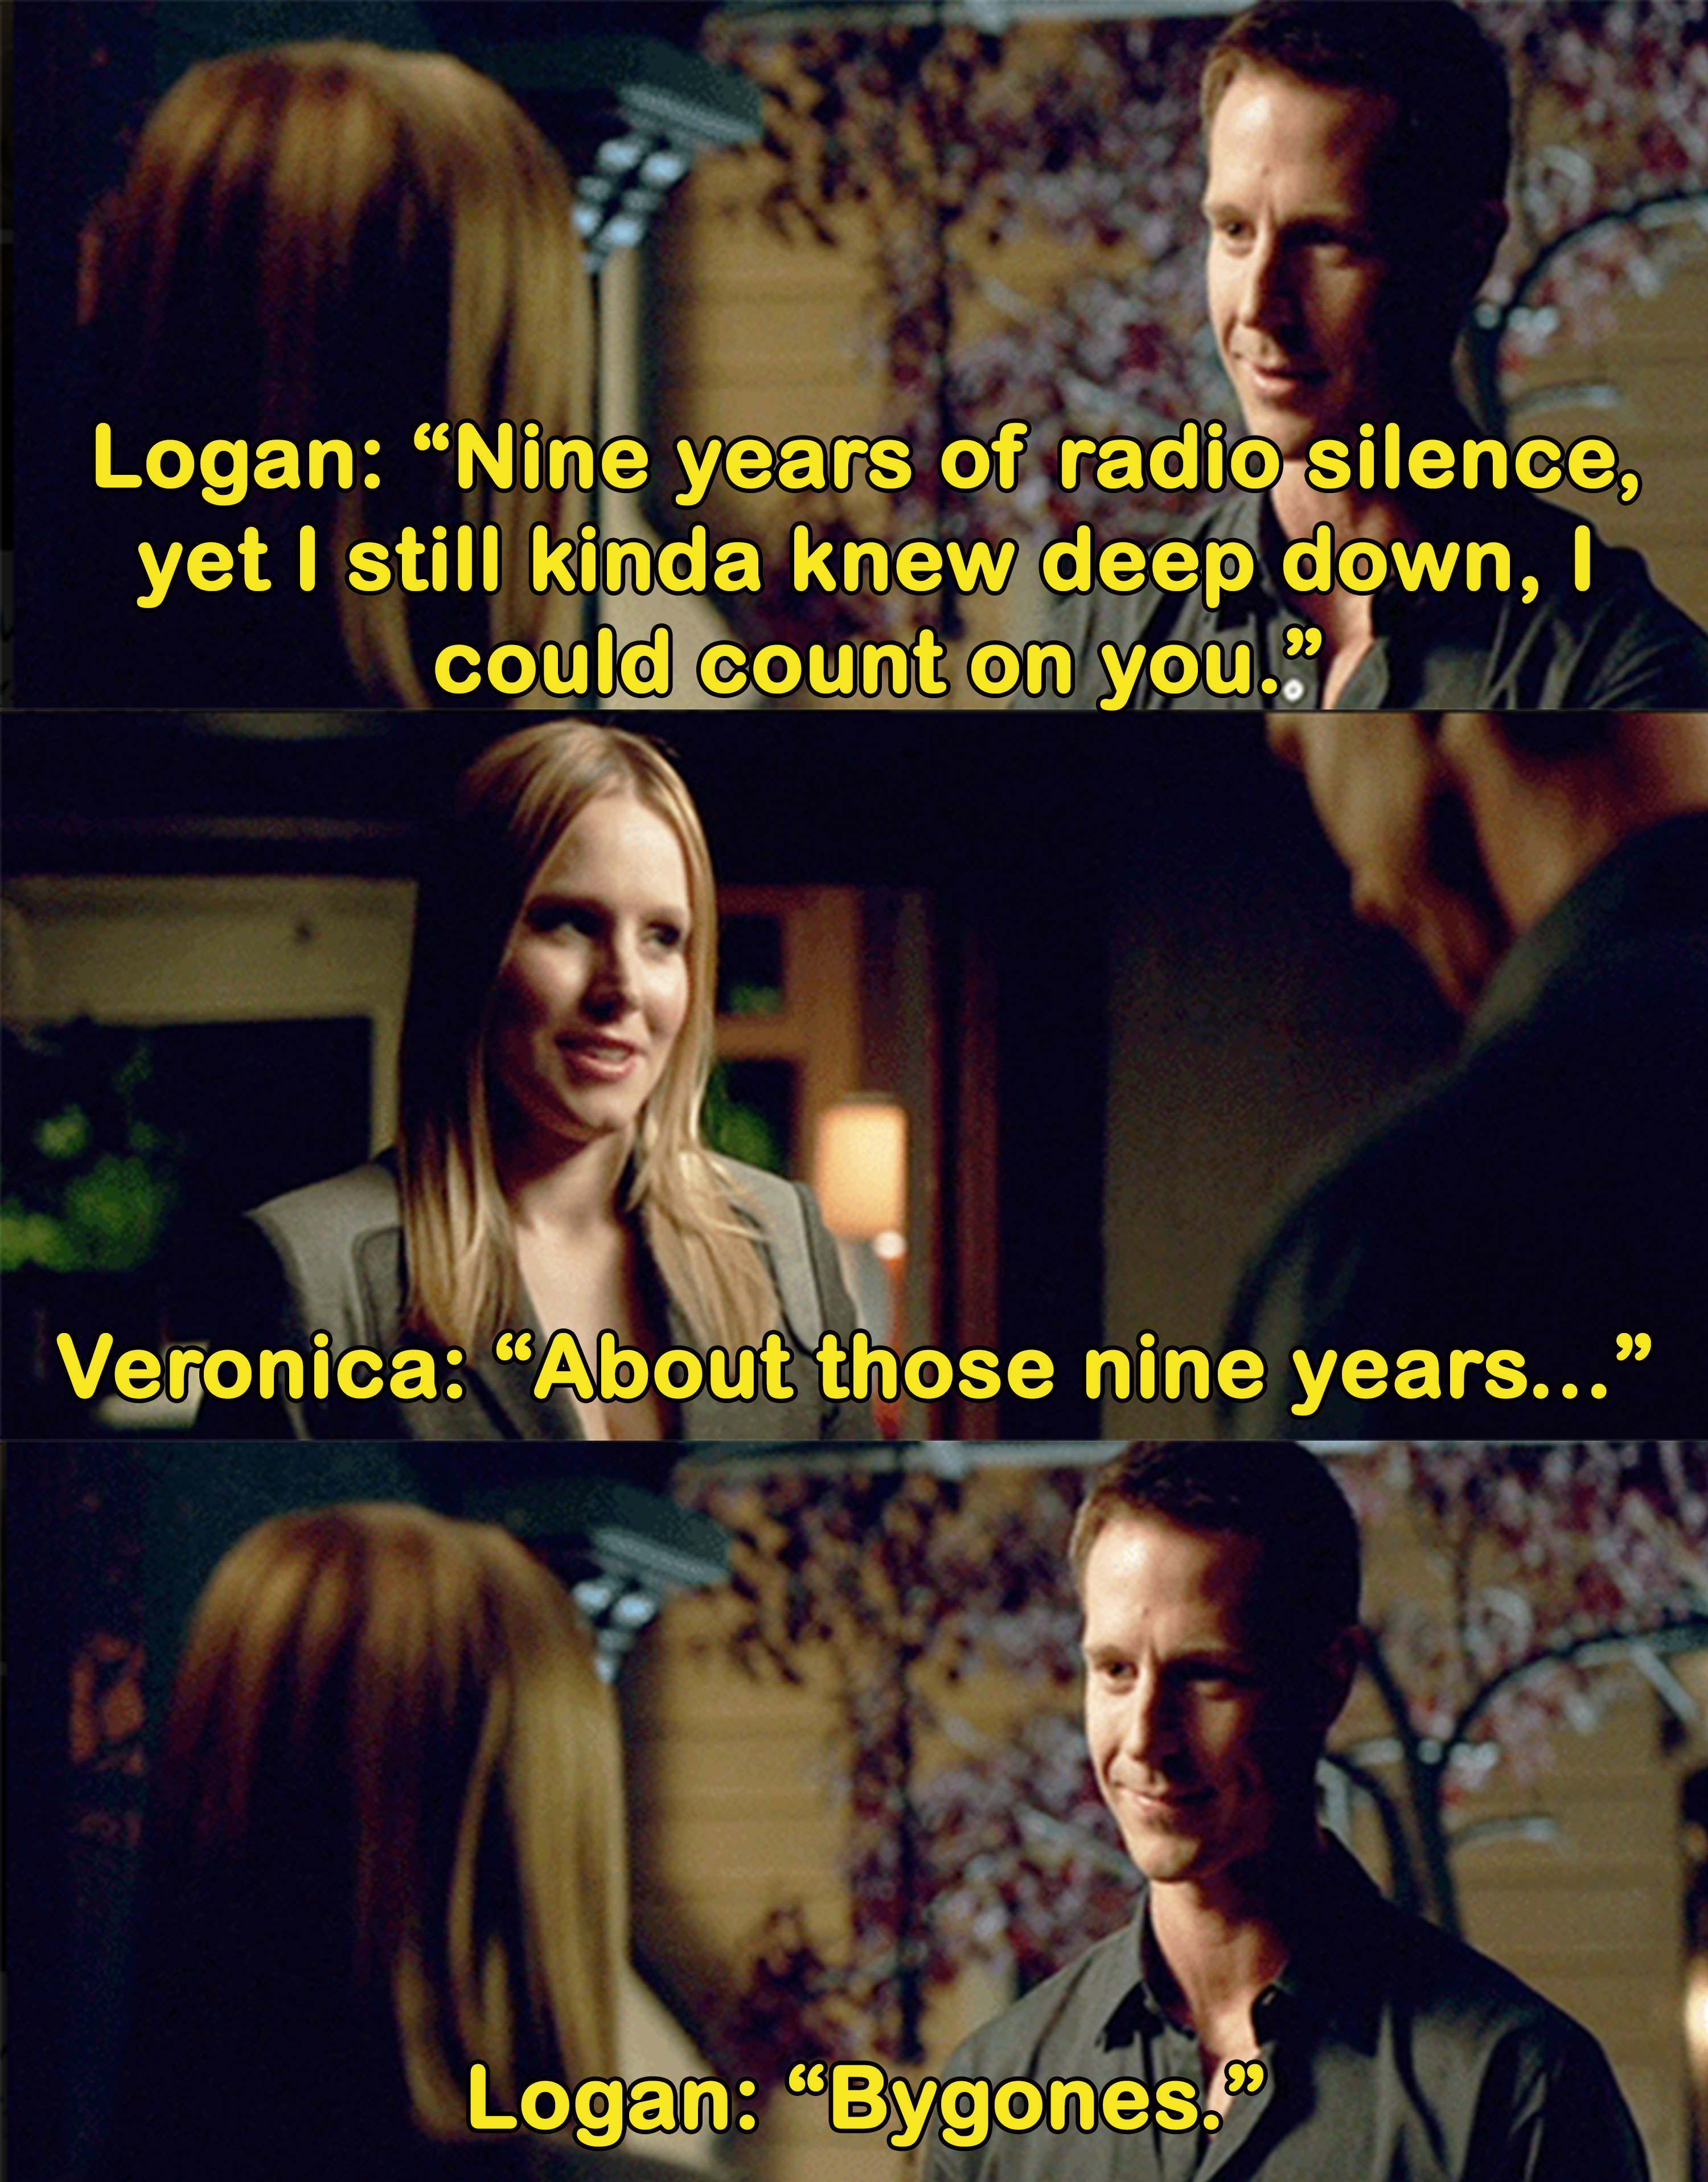 Logan says he always knew he could count on Veronica even if they hadn't spoken in years